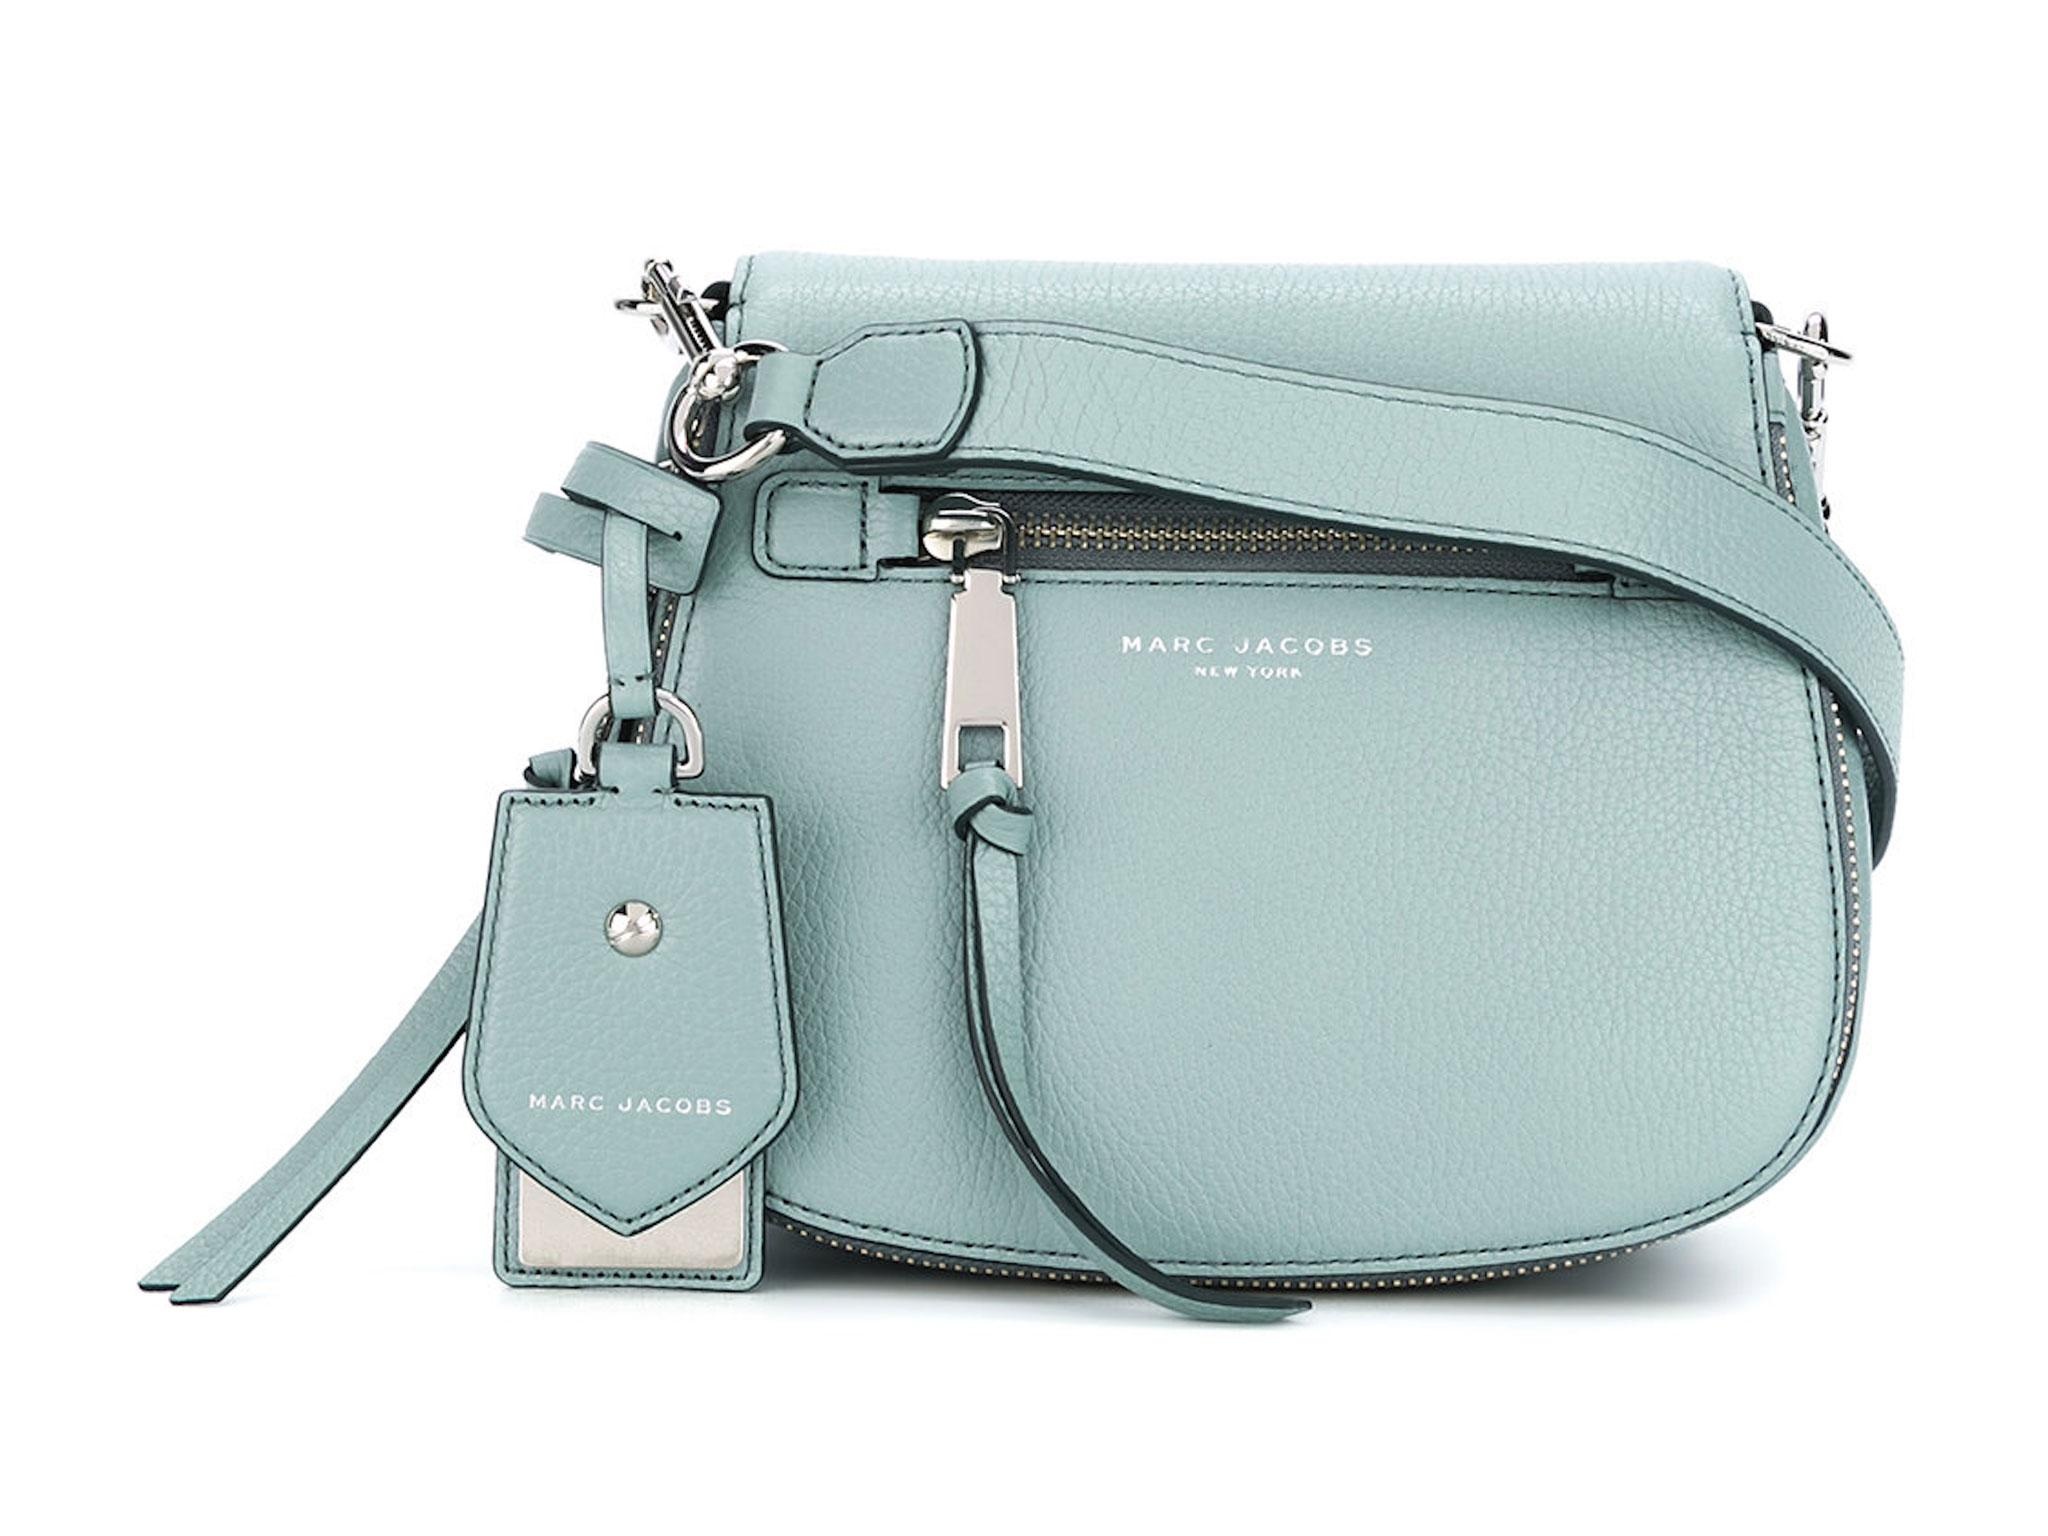 b51553beea3 We love the icy blue colour of this small satchel bag from Marc Jacobs that  just oozes springtime verve. Fitted with an adjustable, detachable shoulder  ...